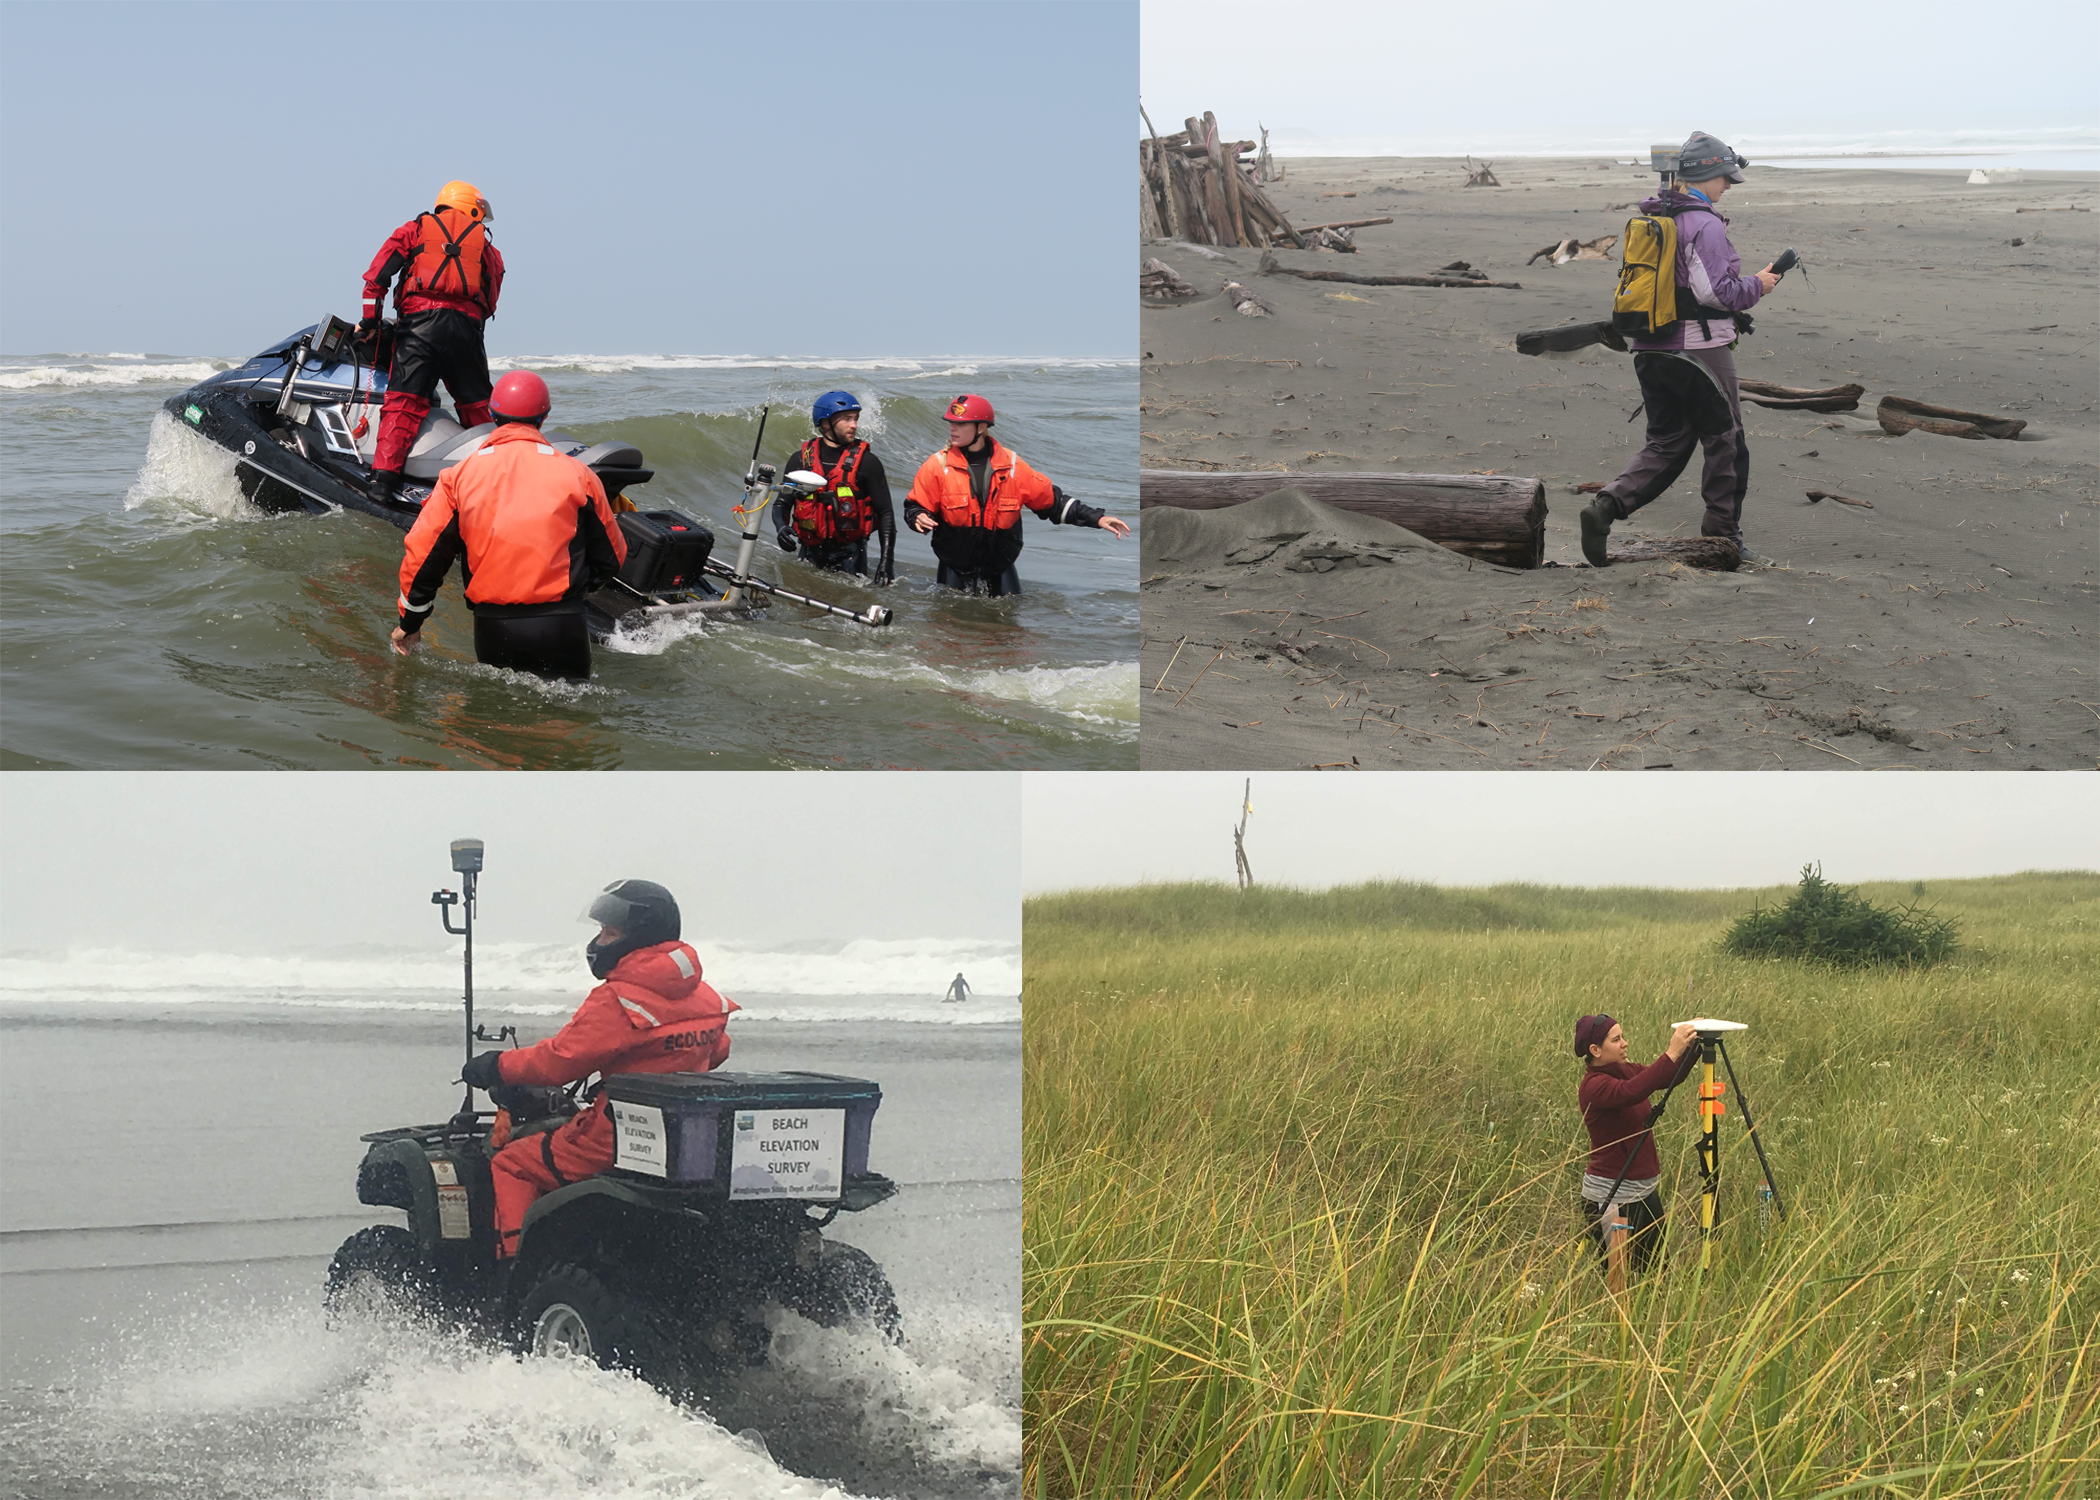 Photographs showing equipment used during bathymetric and topographic surveys along the Columbia River littoral cell, Washington and Oregon.